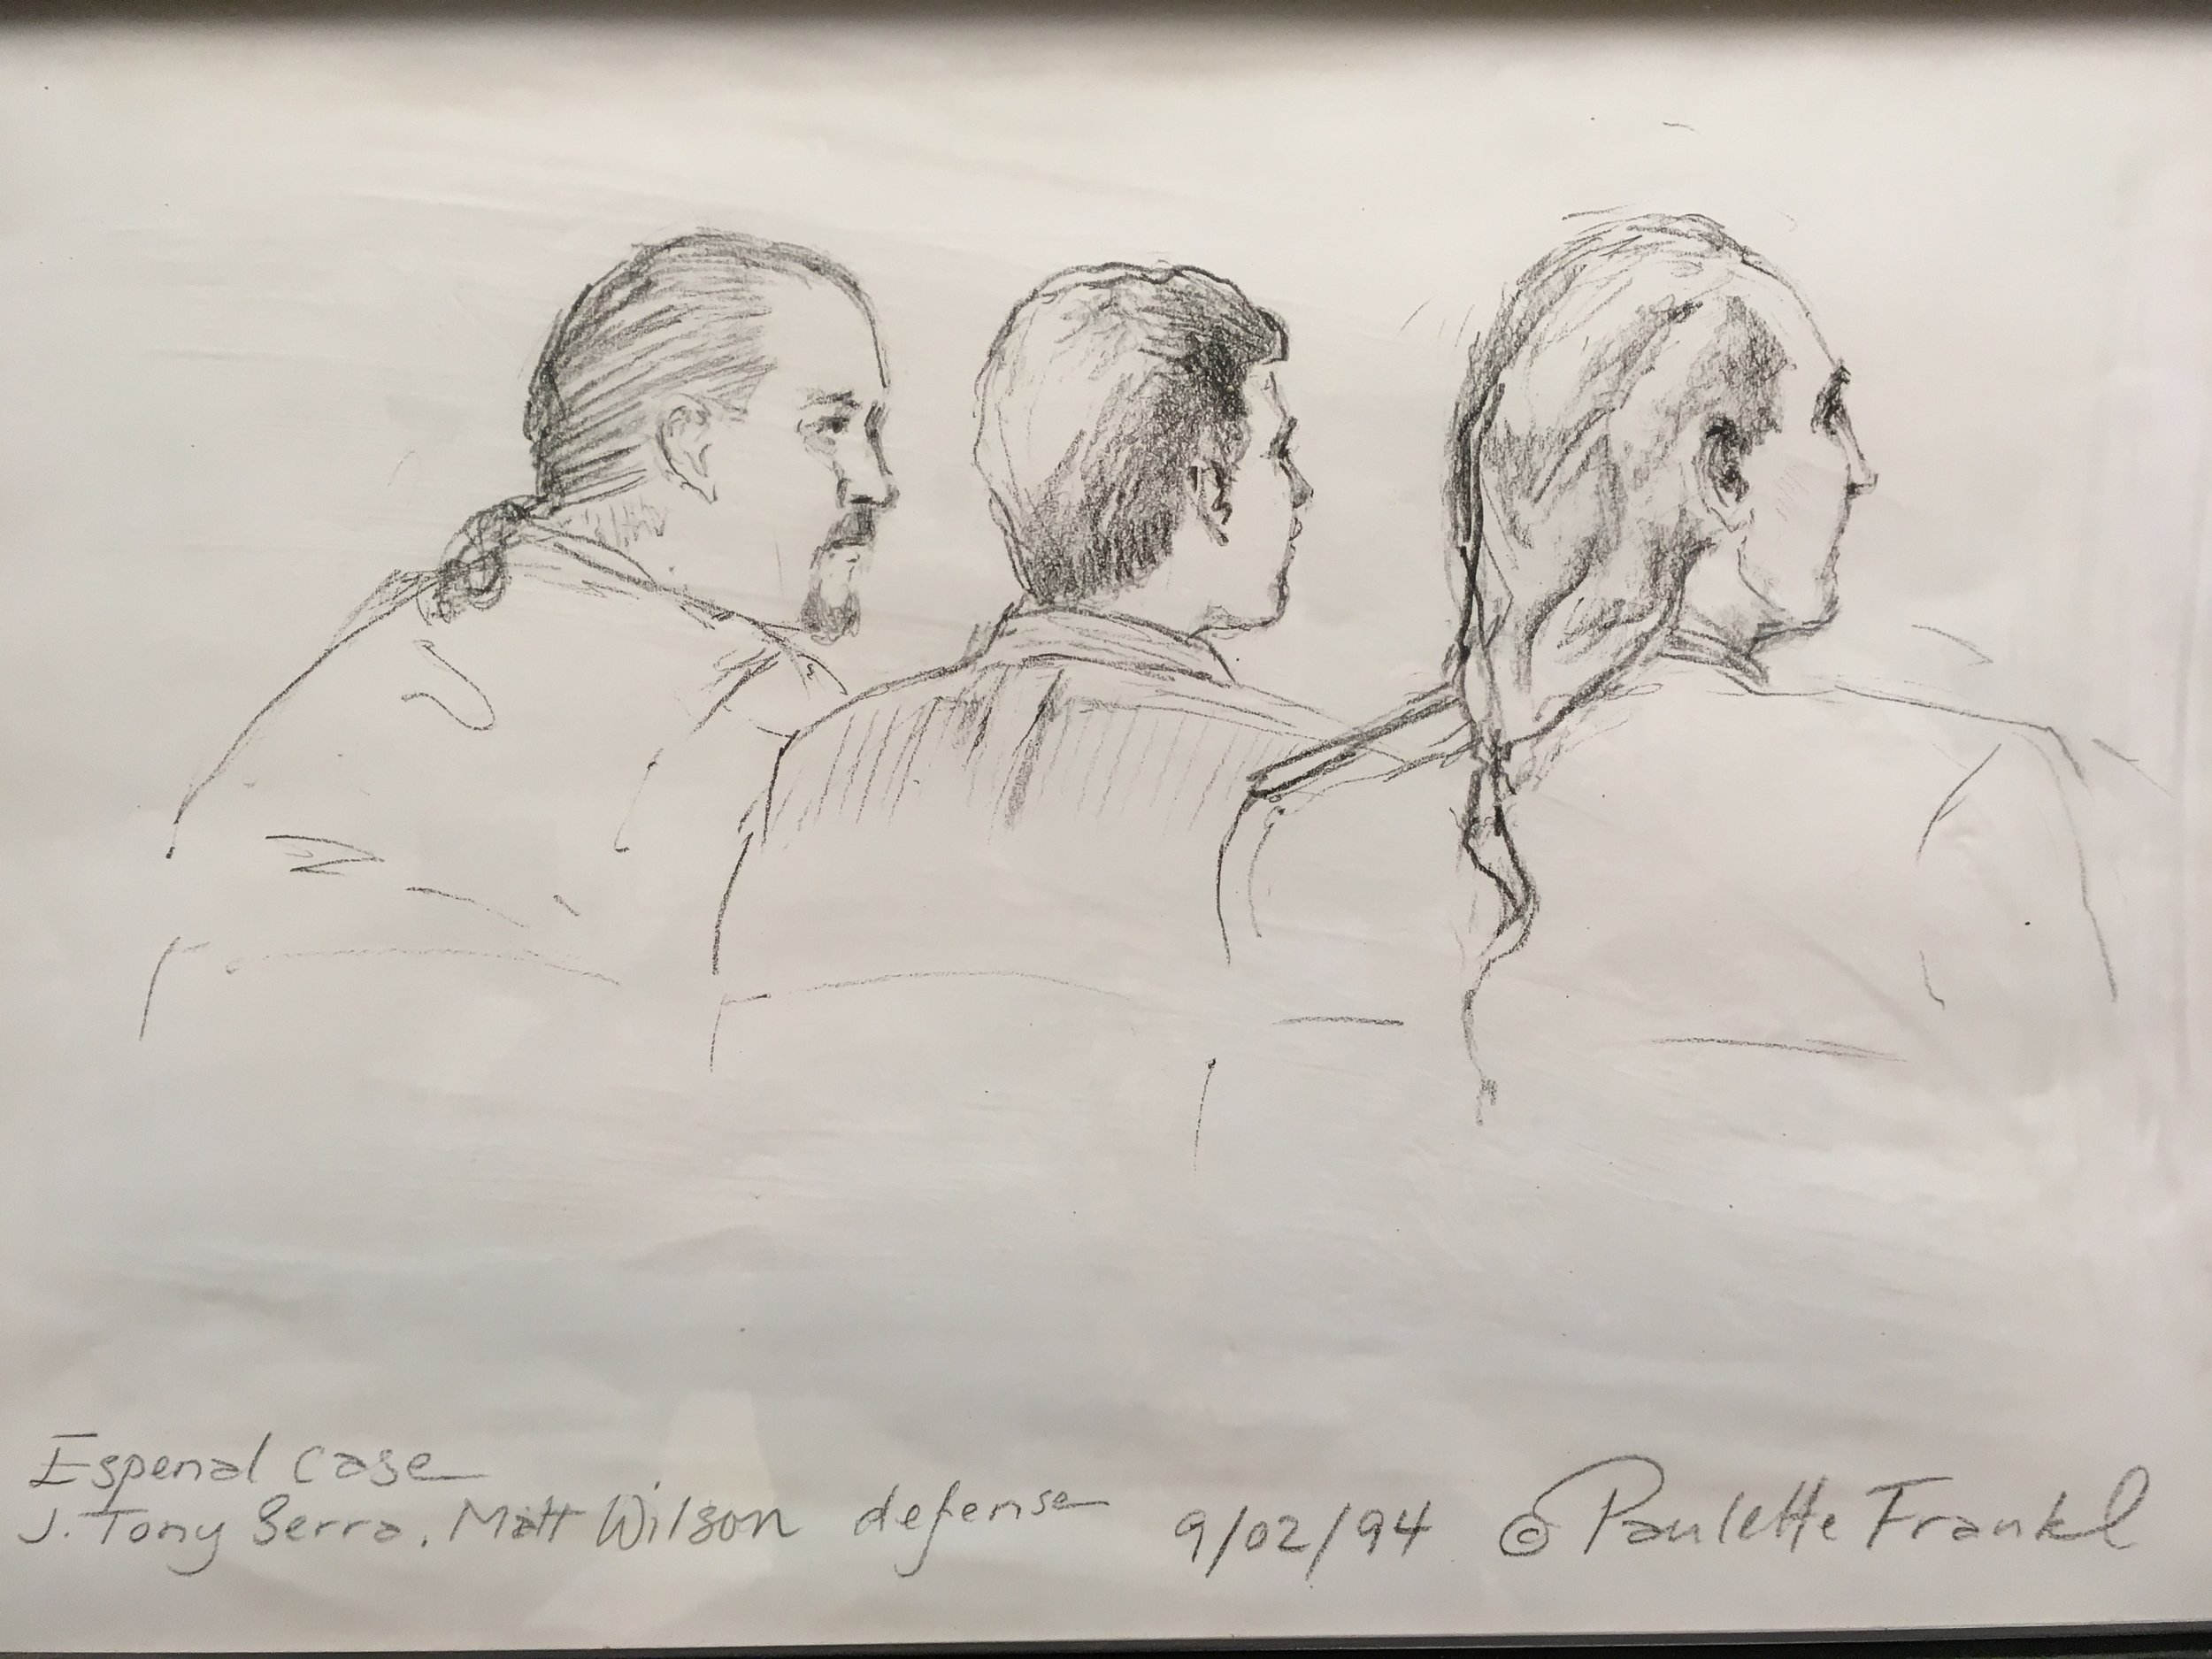 Courtroom sketch (left to right: Blake Wilson, defendant, Tony Serra), Contra Costa Superior Court, Sept. 2, 1994 - by Paulette Frankel